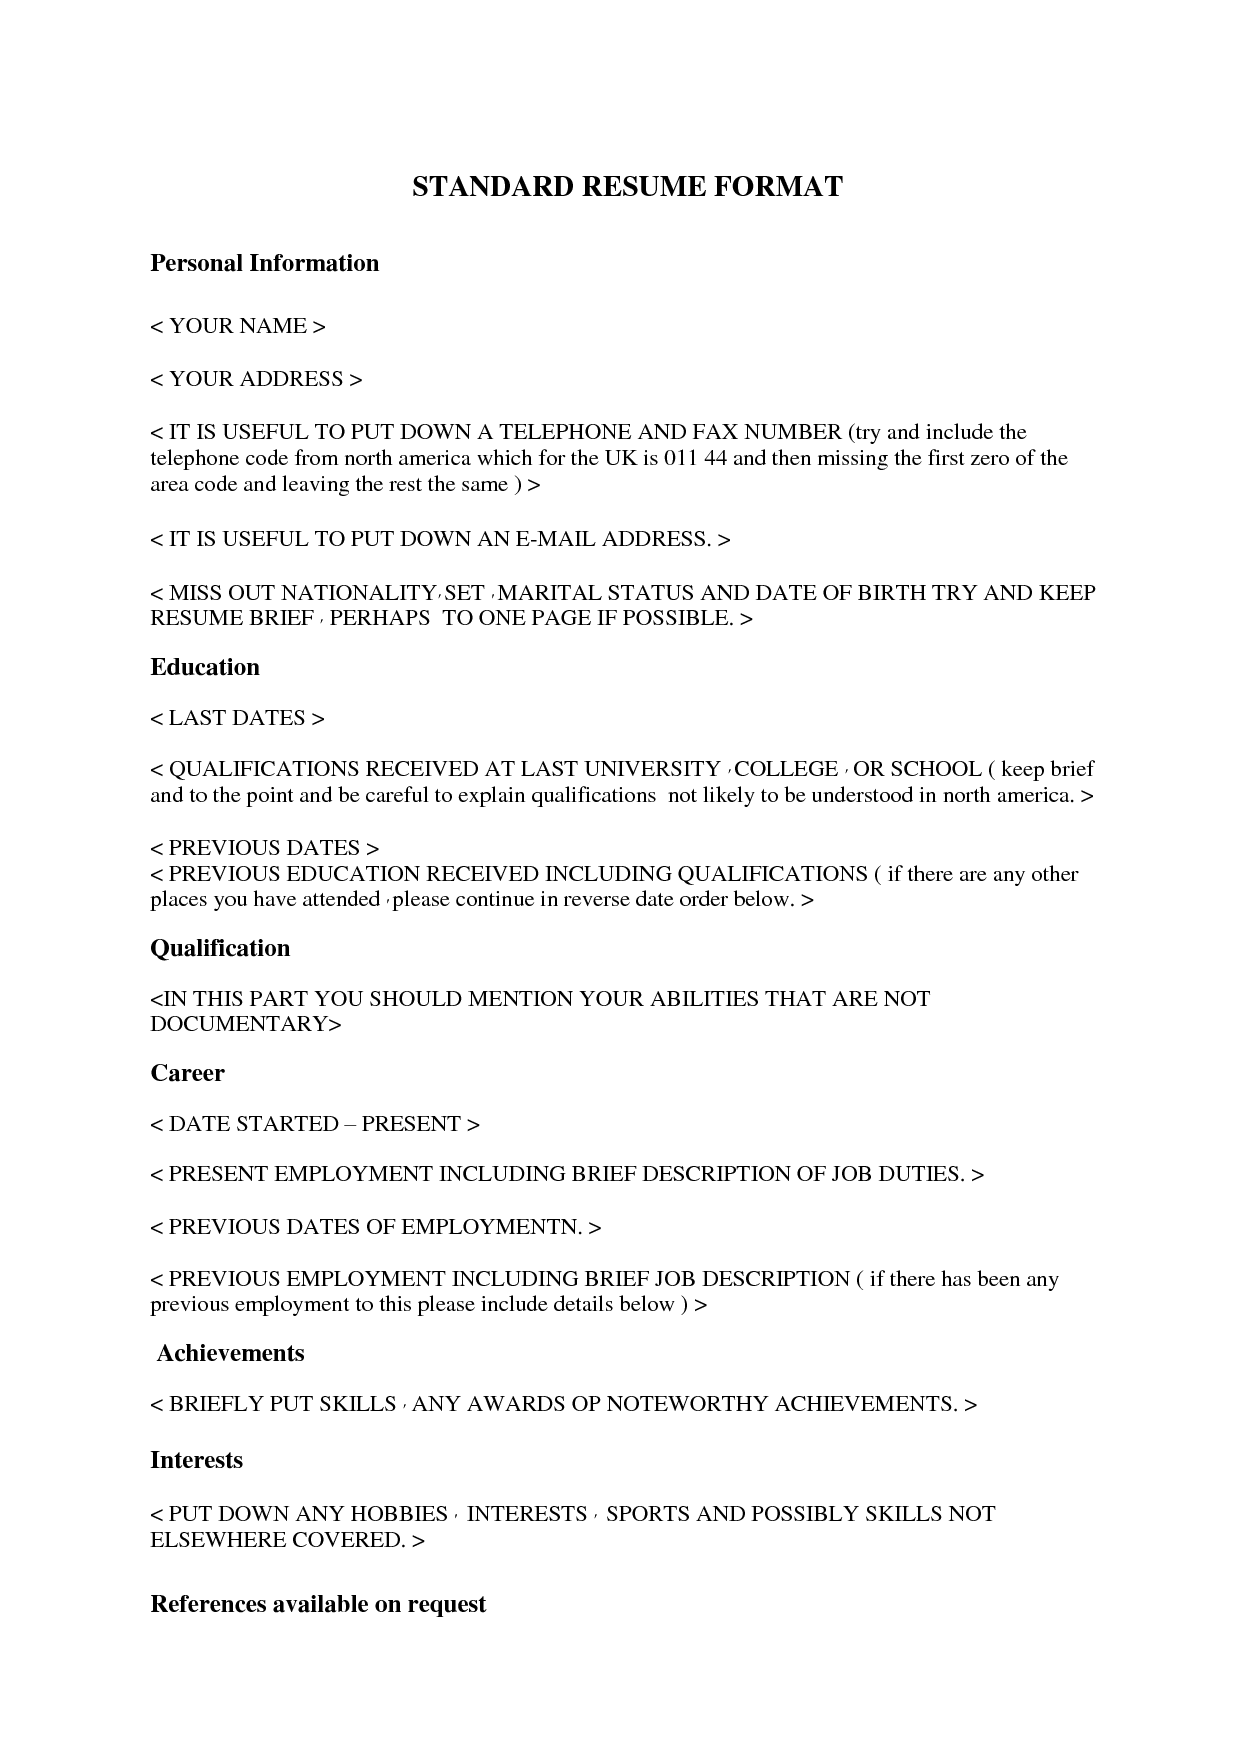 Standard Resume Format Resume Samples Usa Resumes Examples Example Software Engineer